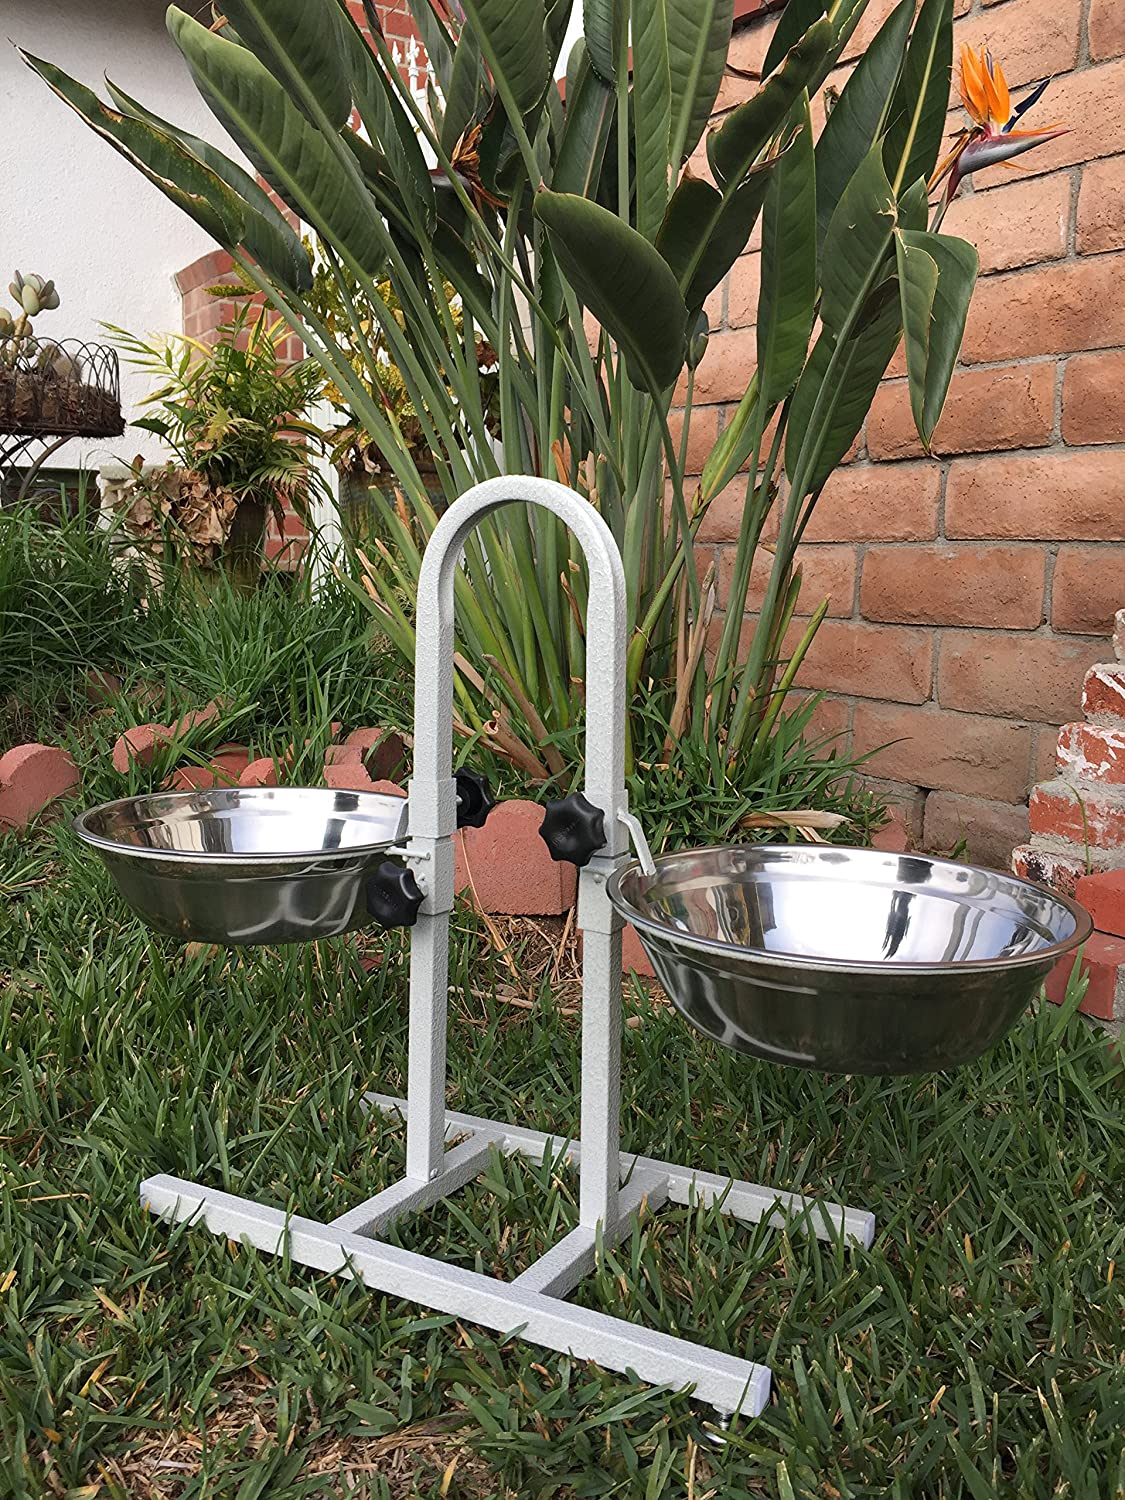 Mcage 2-Quart/3-Quart/5-Quart Adjustable Double Wrought Iron Chew Free Stainless Steel Dog Cat Pet Diner Food Water Bowls